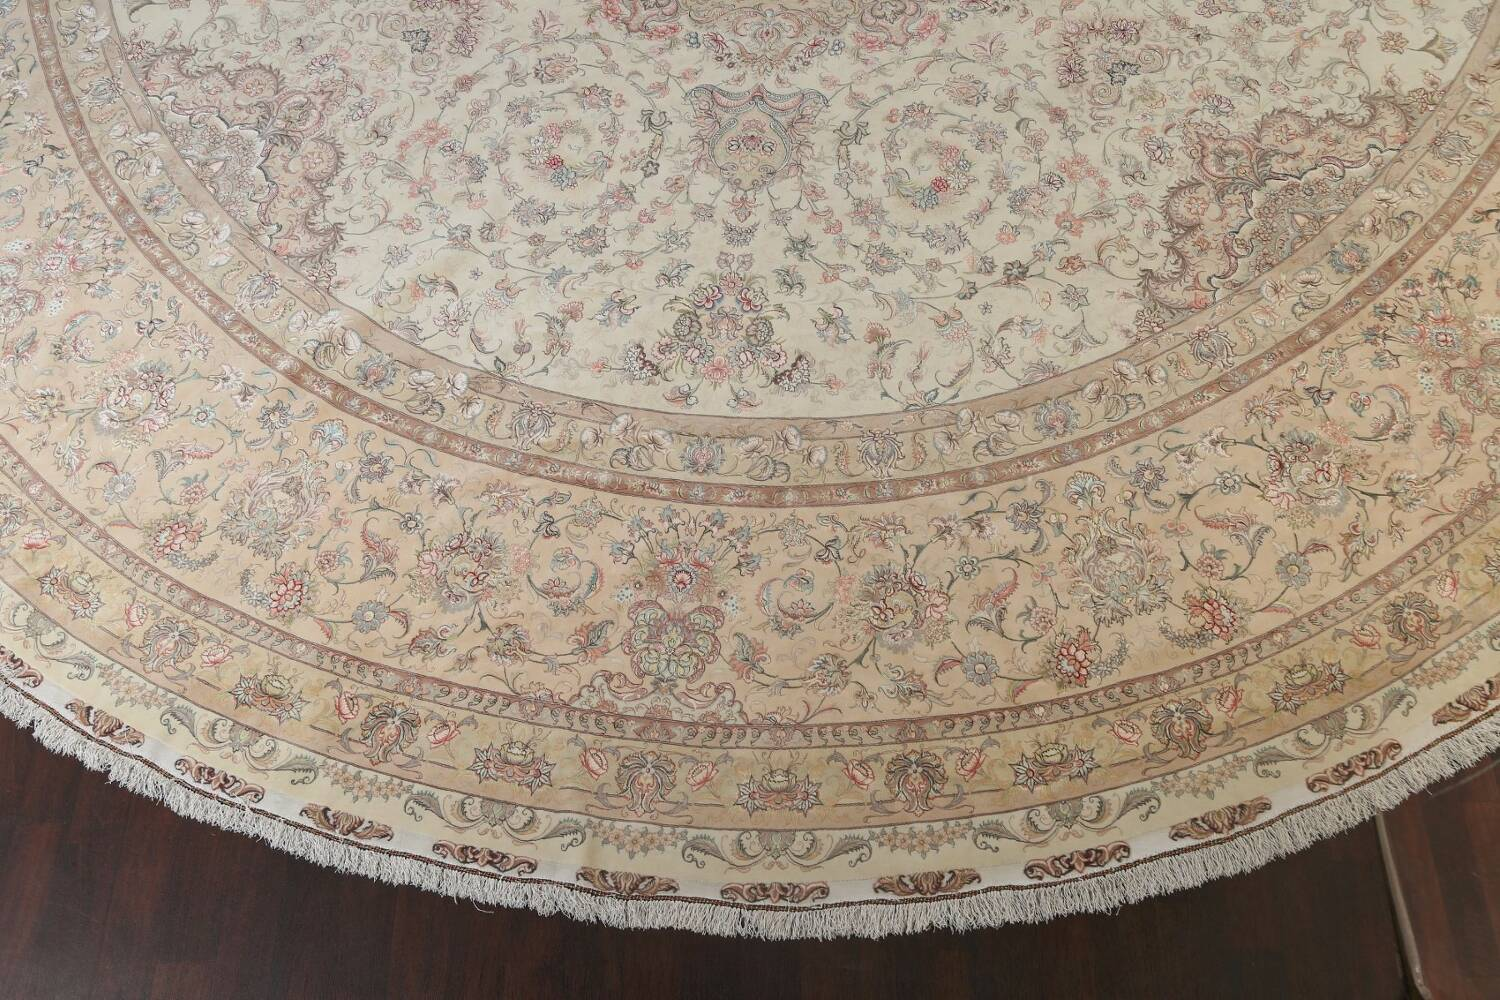 100% Vegetable Dye Floral Tabriz Persian Area Rug 22x23 Round image 5